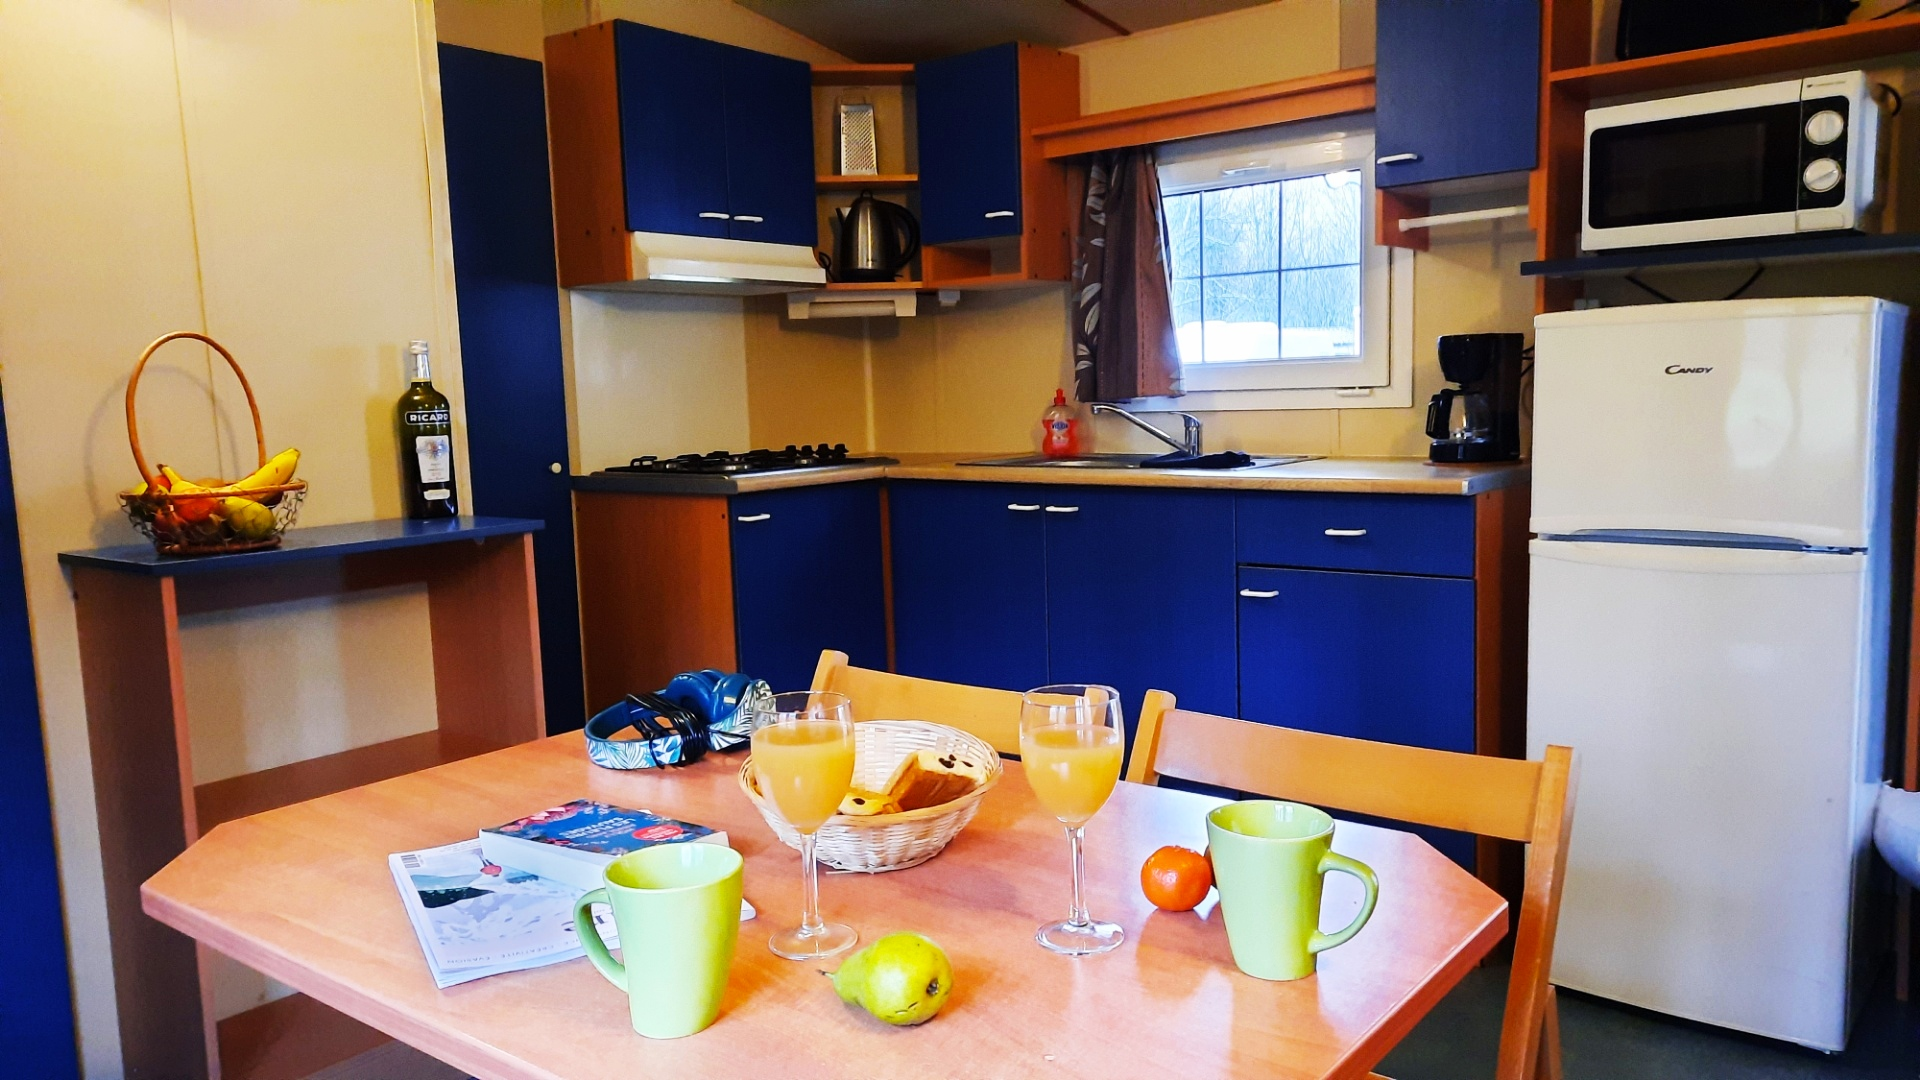 Location - Cottage Mercure 4/6 Pers 2 Chb 1 Sdb - Camping La Roucateille